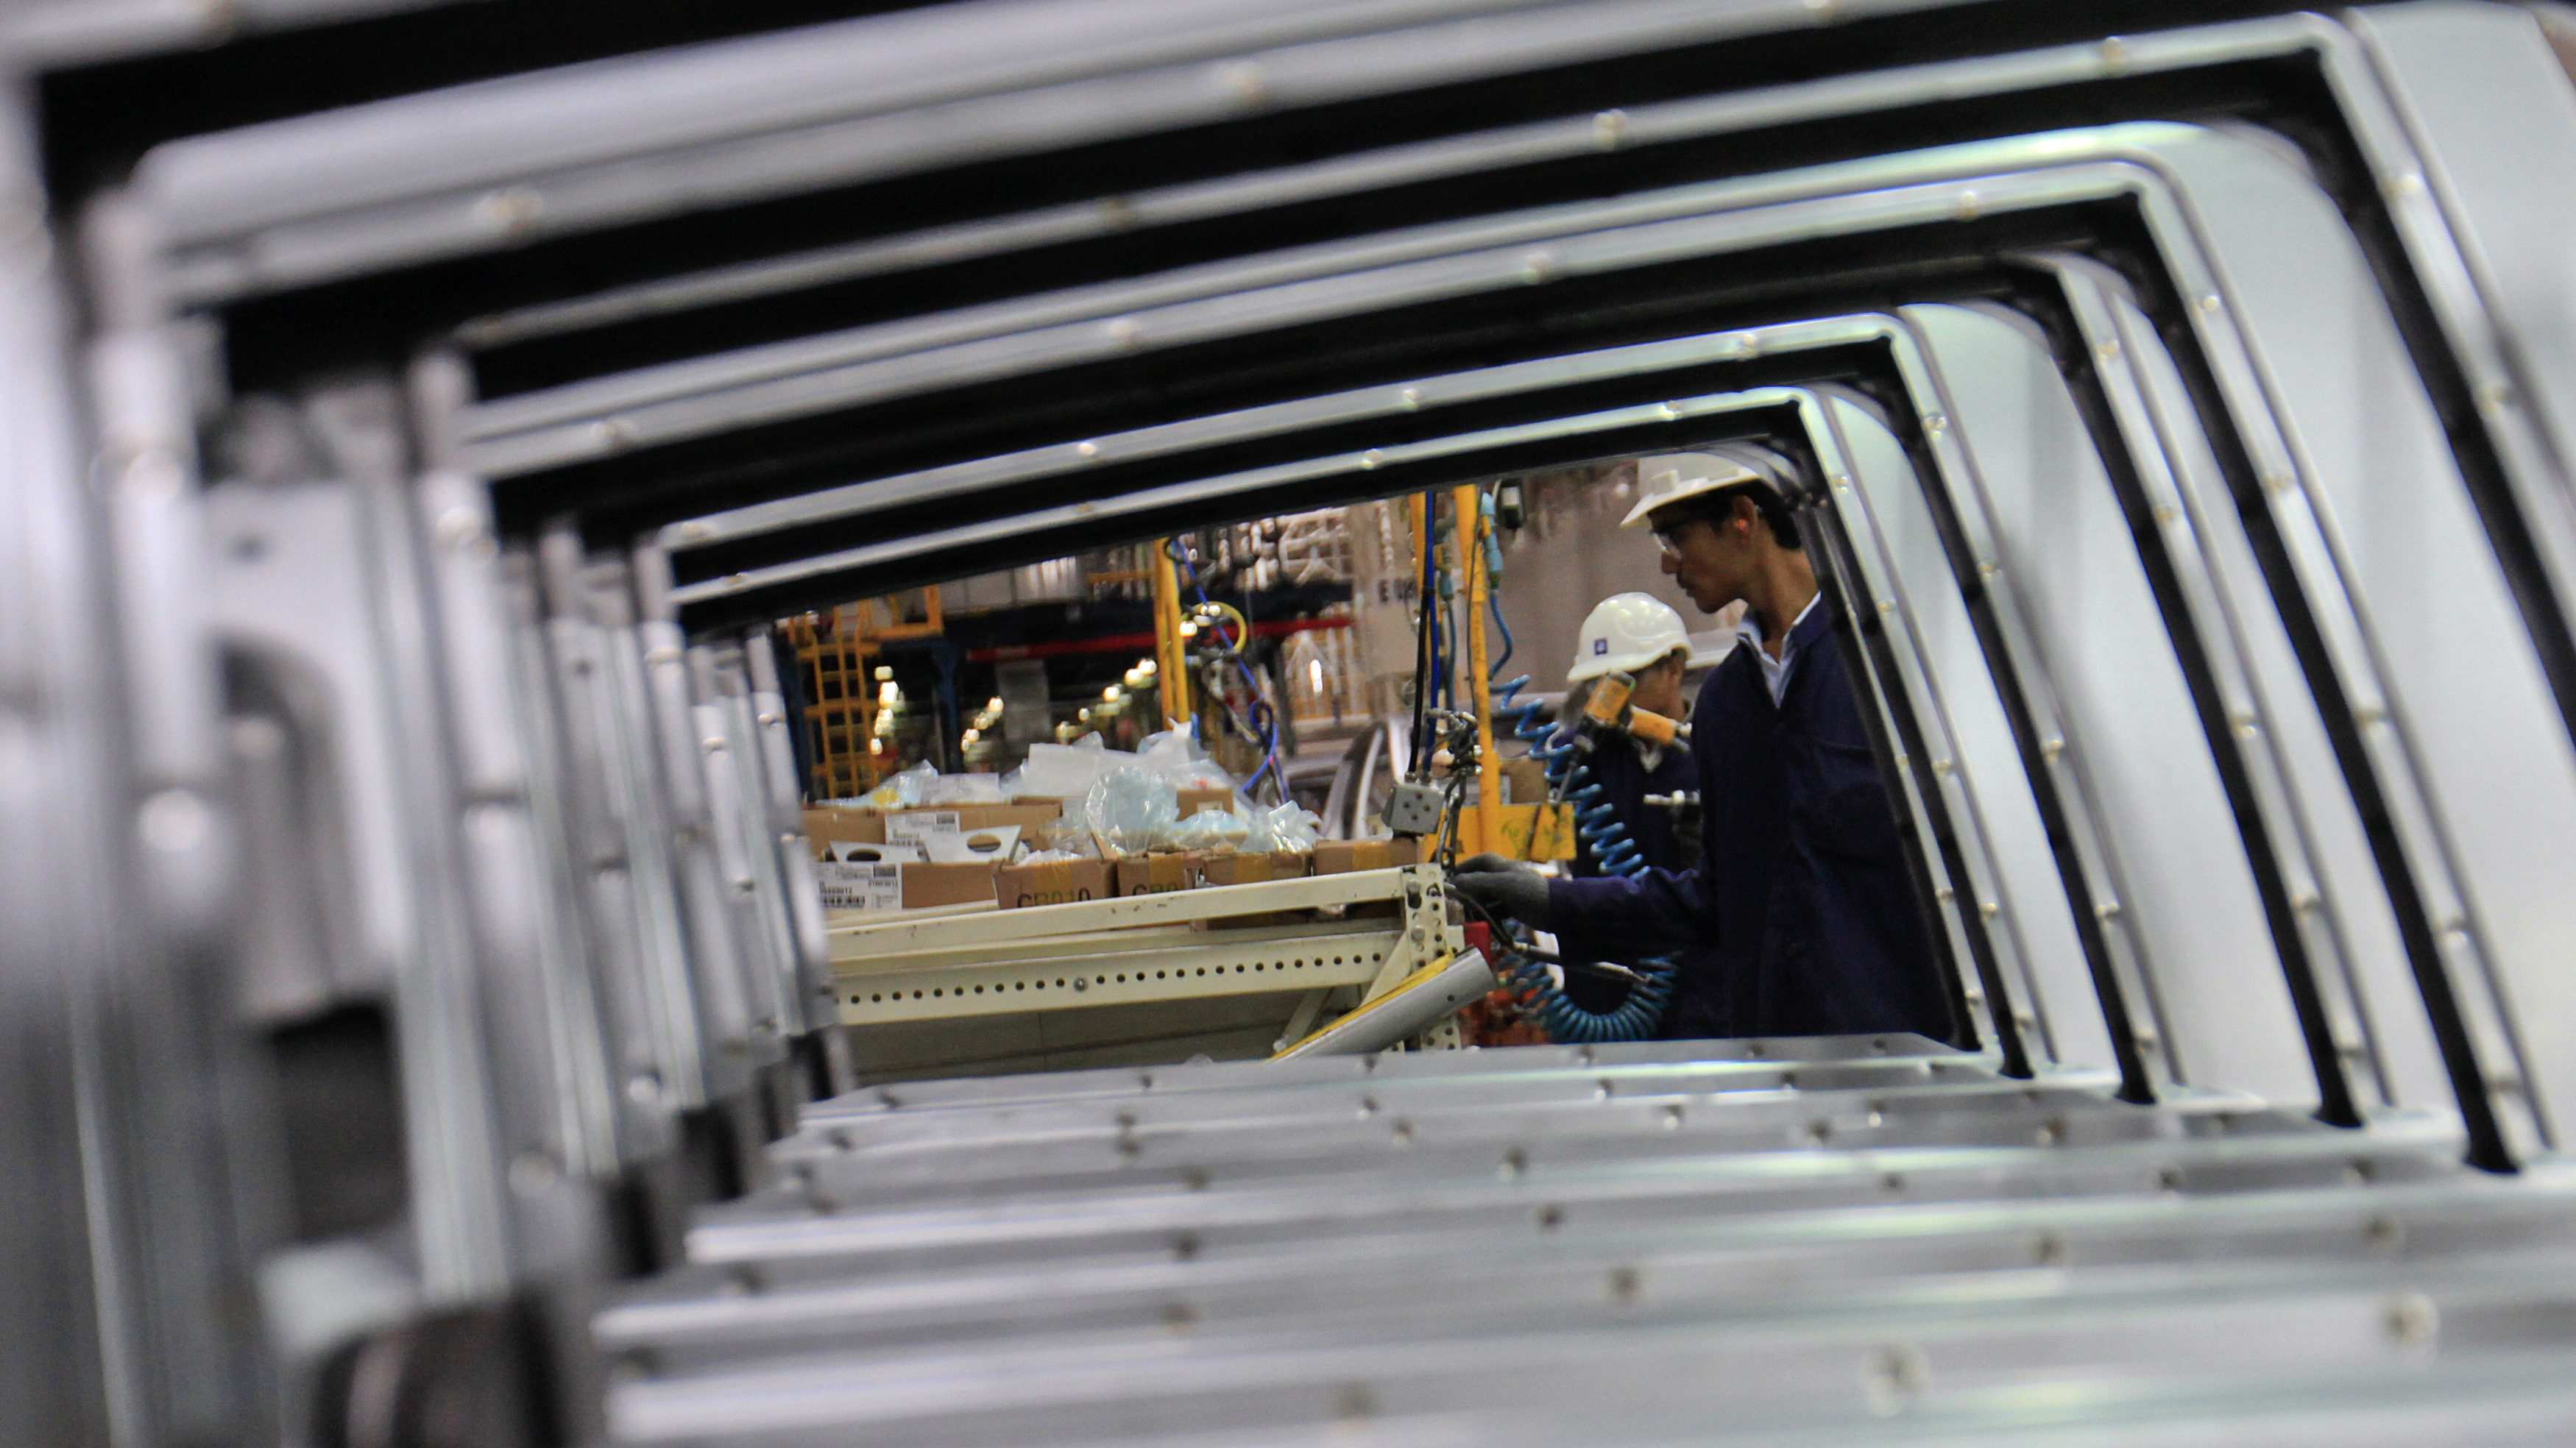 Employees are seen working through the doors of Chevrolet Beat cars on an assembly line at the General Motors plant in Talegaon, about 118 km (73 miles) from Mumbai September 3, 2012. General Motors Co began initial production of its first ever Chinese-designed car for the Indian market this week, a major step for the U.S. automaker as it tries to scale up in a market where foreign companies have struggled. Picture taken September 3, 2012. REUTERS/Danish Siddiqui (INDIA - Tags: TRANSPORT BUSINESS) - RTR37HKK